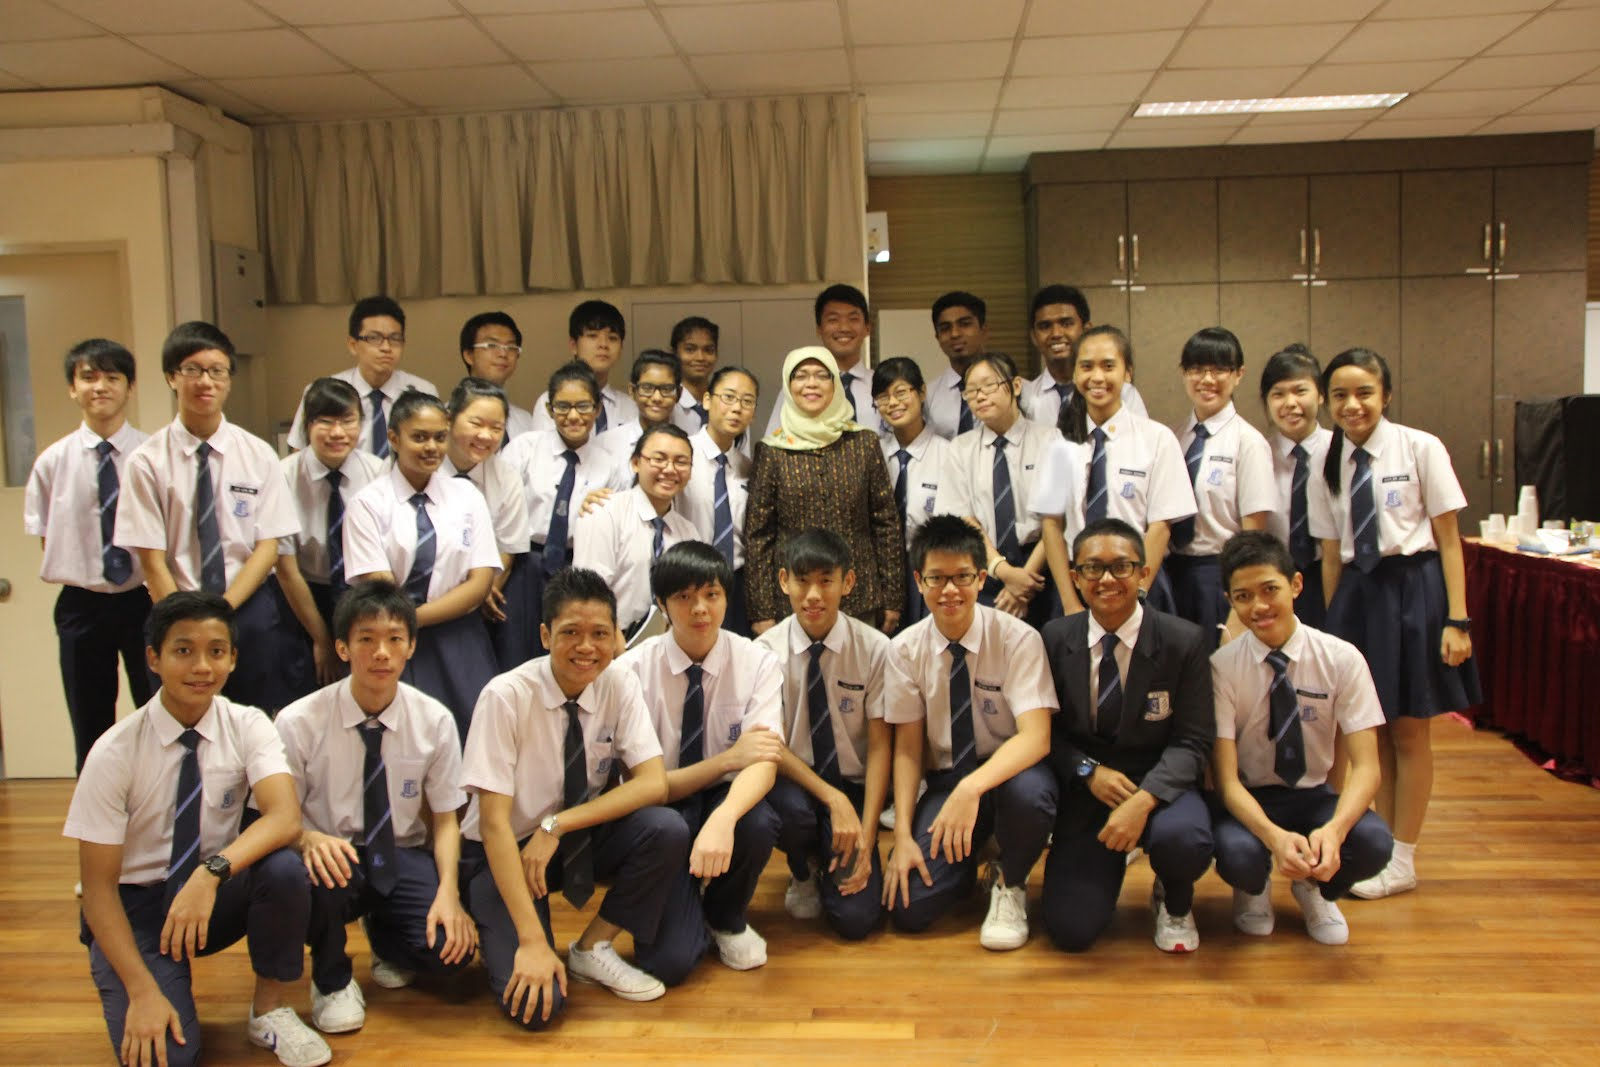 Mdm Halimah Attended The Student Conference And Shared With The Students At Yusok Ishak Secondary School On  July Friday The Theme For The Forum Is